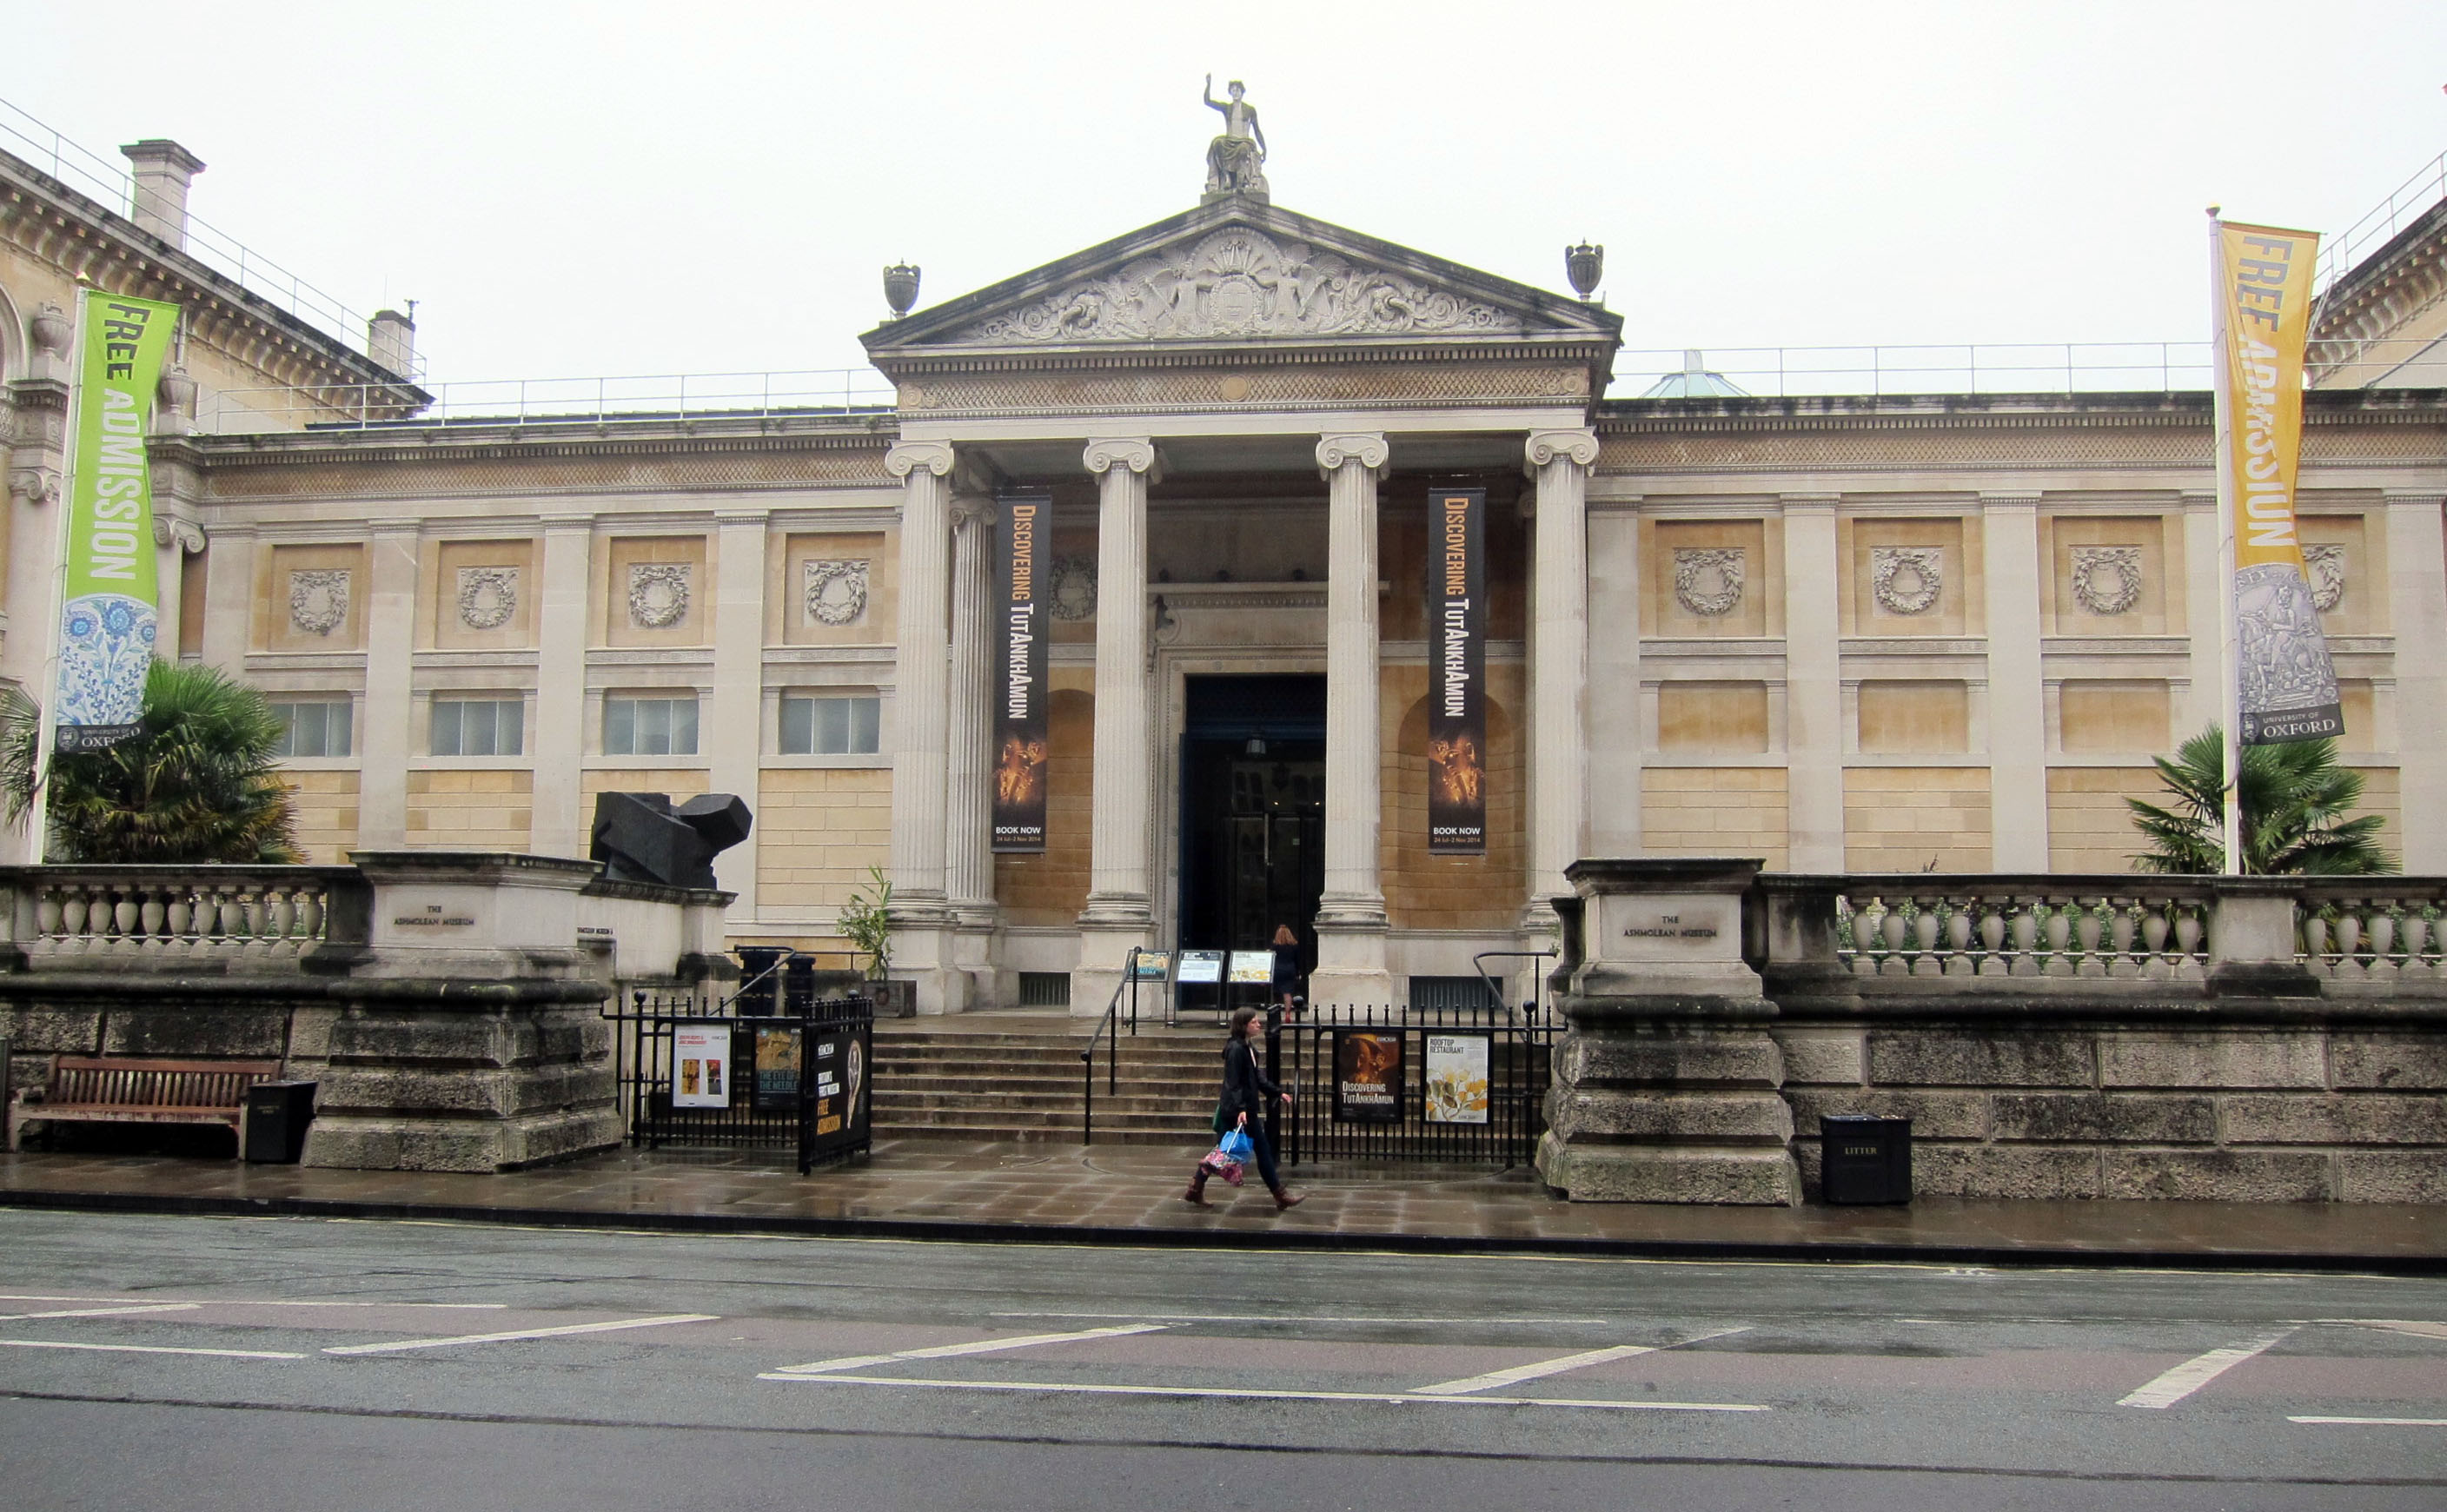 The front entrance of the Ashmolean Museum